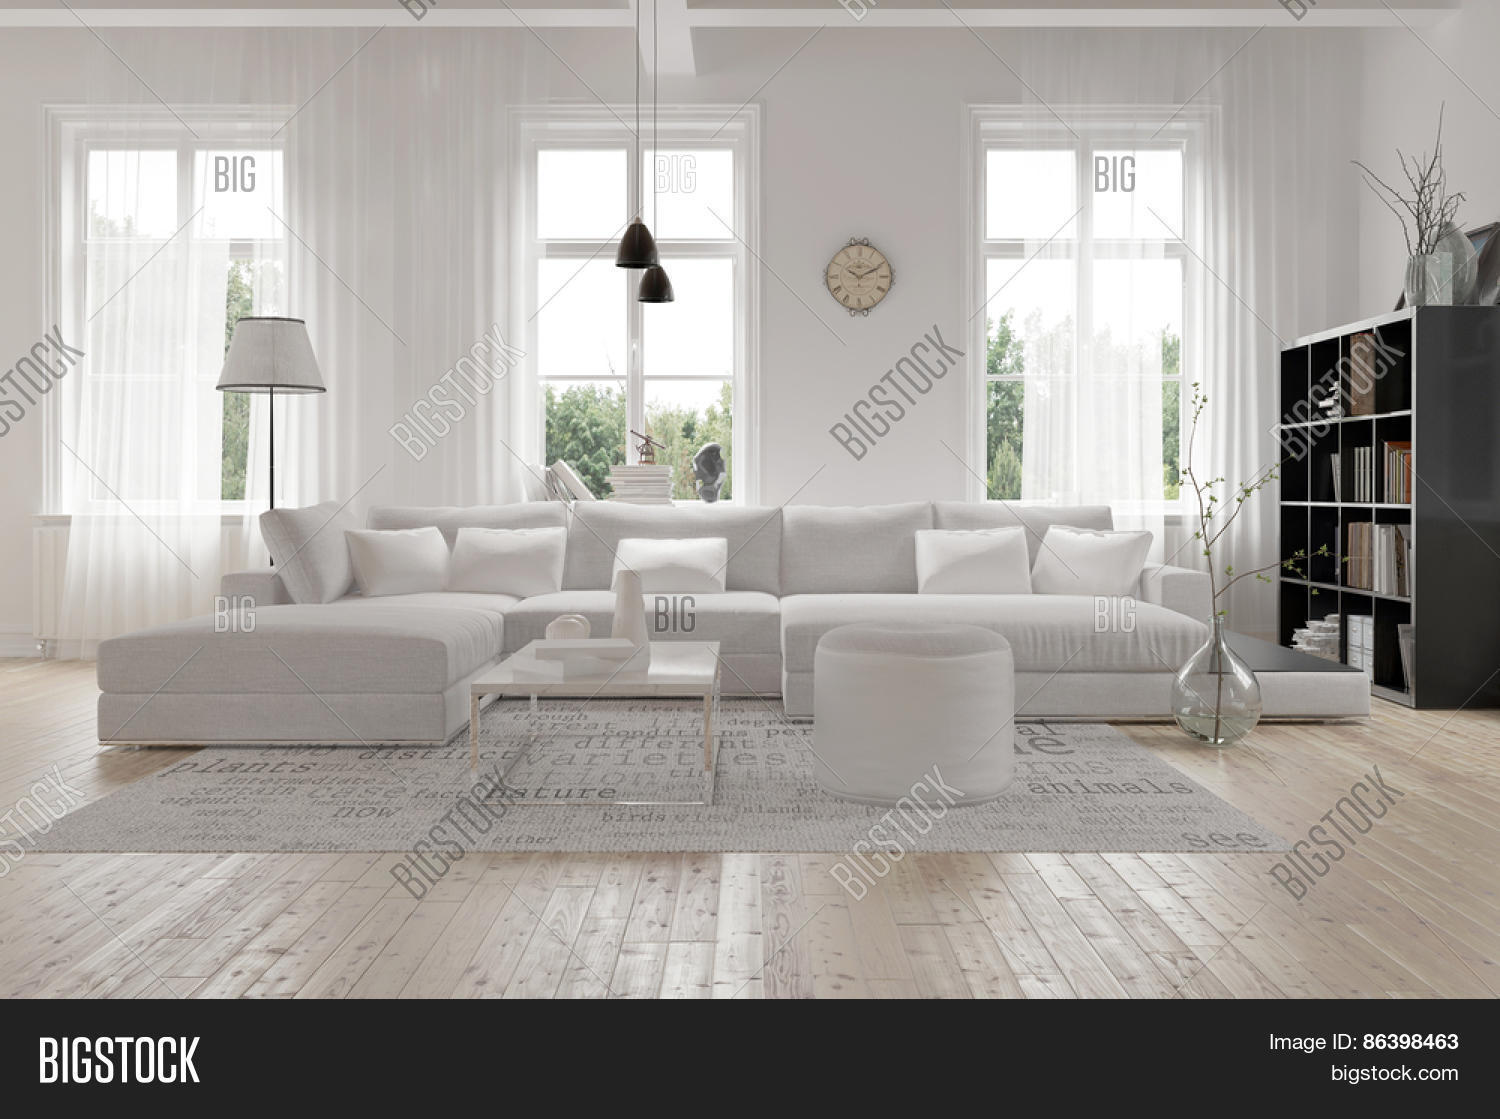 Modern Spacious Lounge Image & Photo (Free Trial) | Bigstock